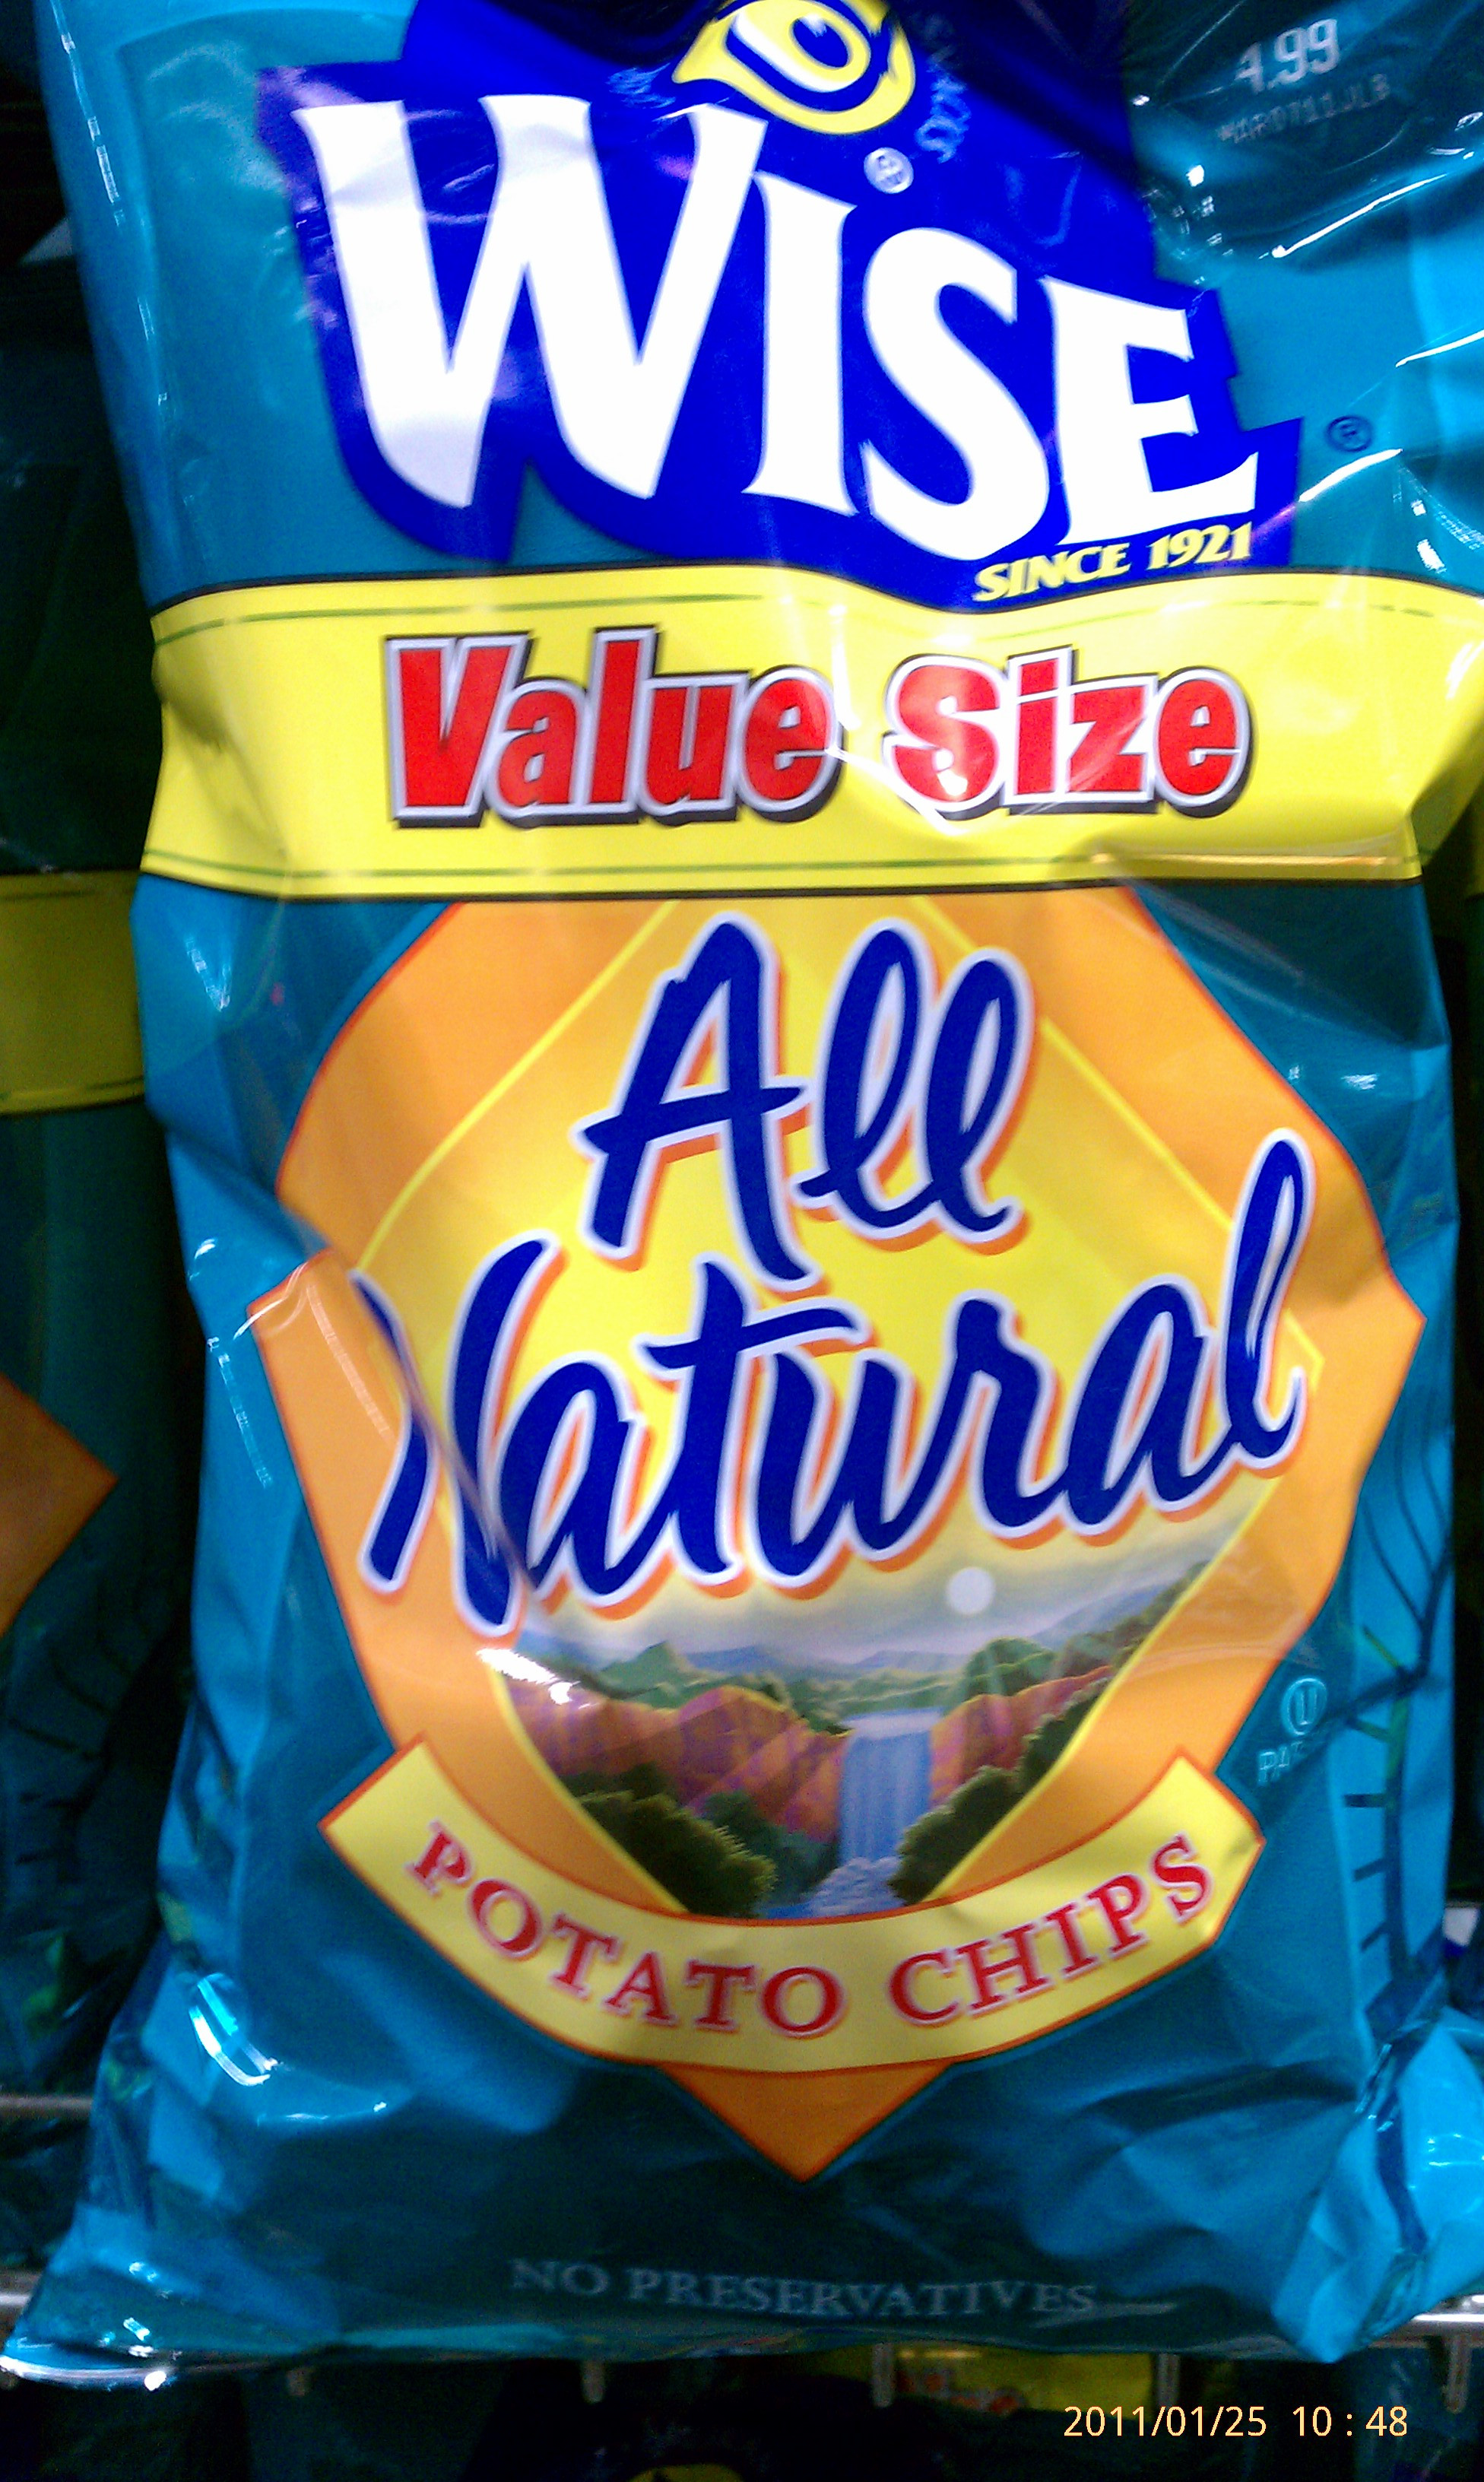 Wise Potato Chips  A New York Deli s Wise Potato Chips Order Page